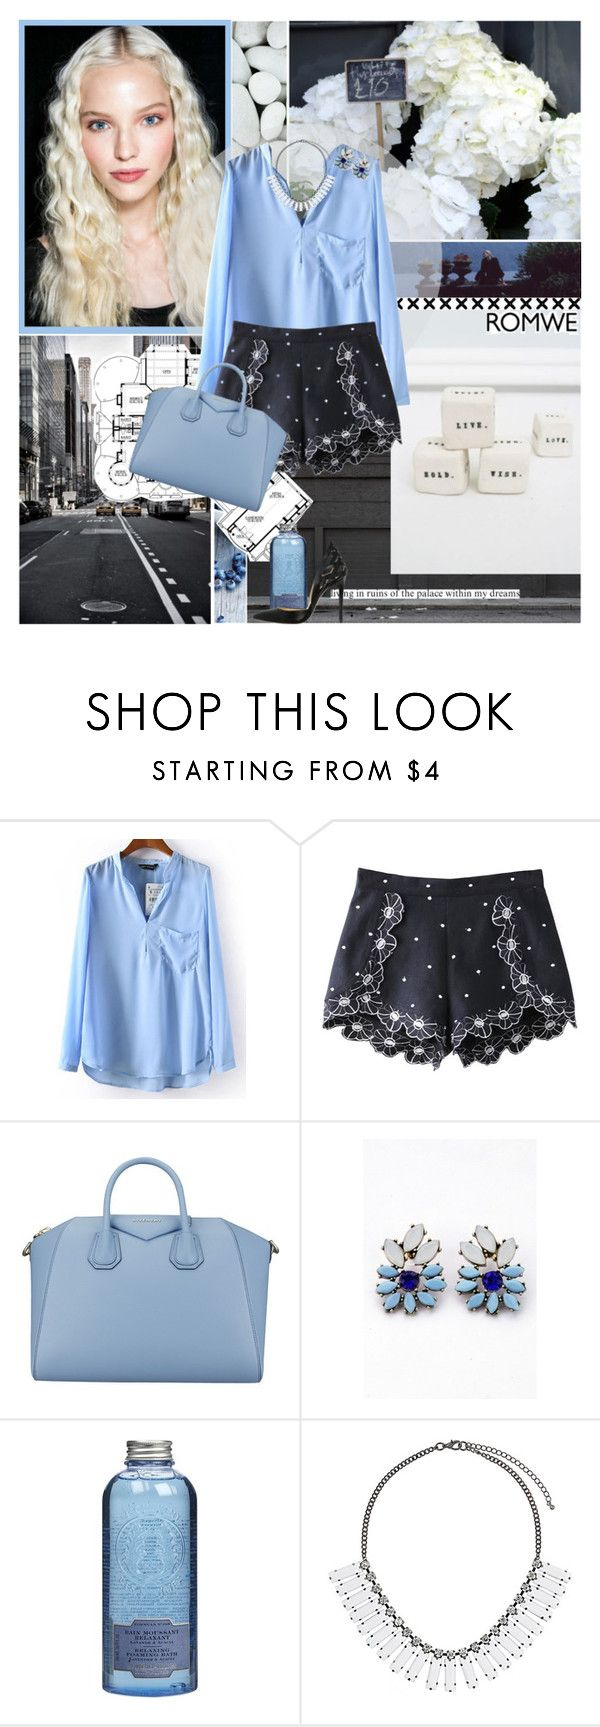 """""""place within my dreams"""" by kirstent1 ❤ liked on Polyvore featuring Dolce&Gabbana, Zara, Chicnova Fashion, Givenchy, Le Couvent des Minimes, Dorothy Perkins and Alejandro Ingelmo"""